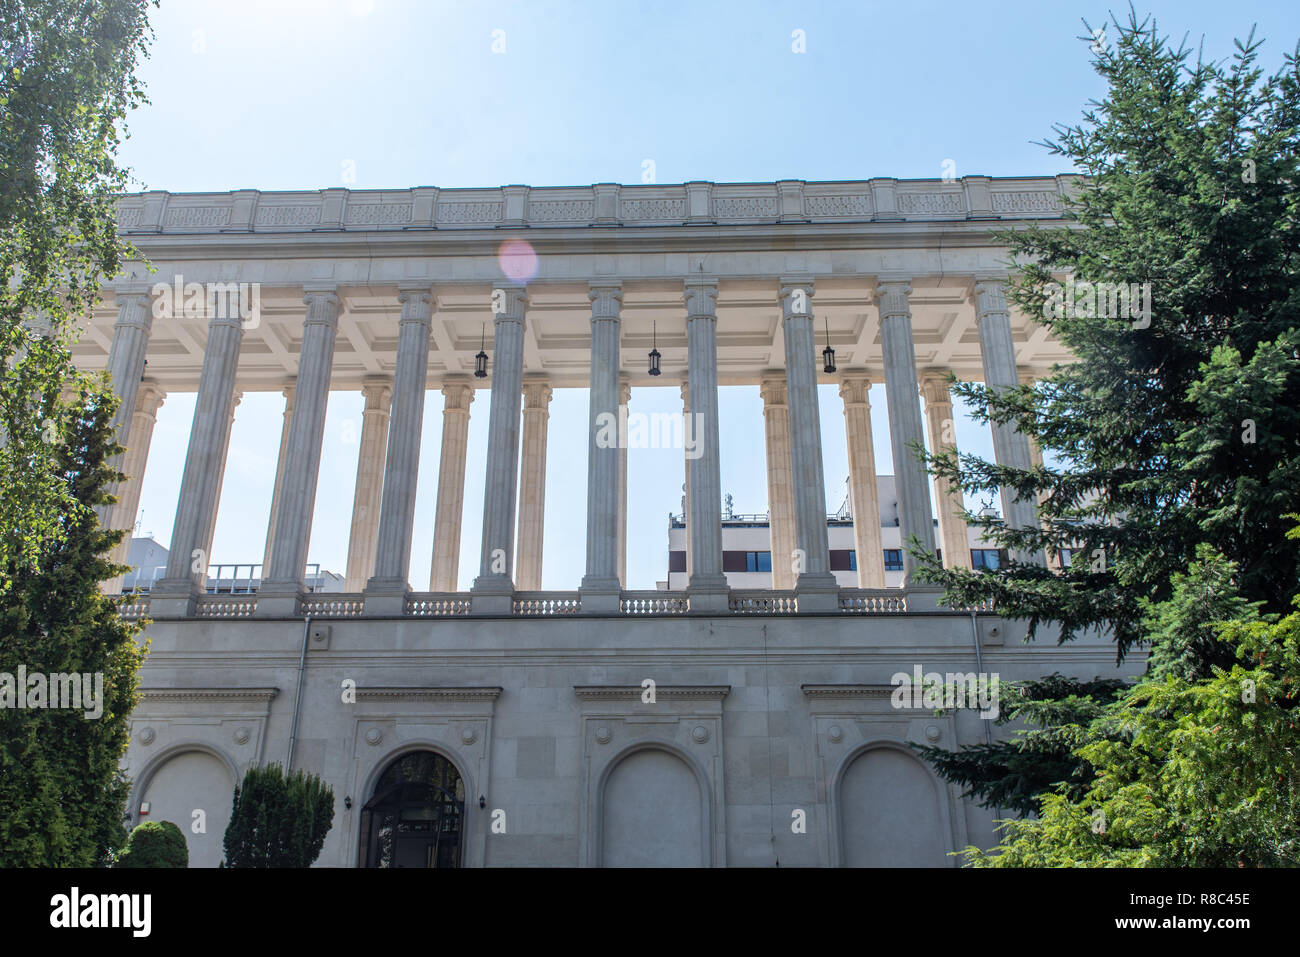 Greek inspired columns line the building of the Ministry of Agriculture and Rural Development, Warsaw, Masovian Voivodeship, Poland - Stock Image